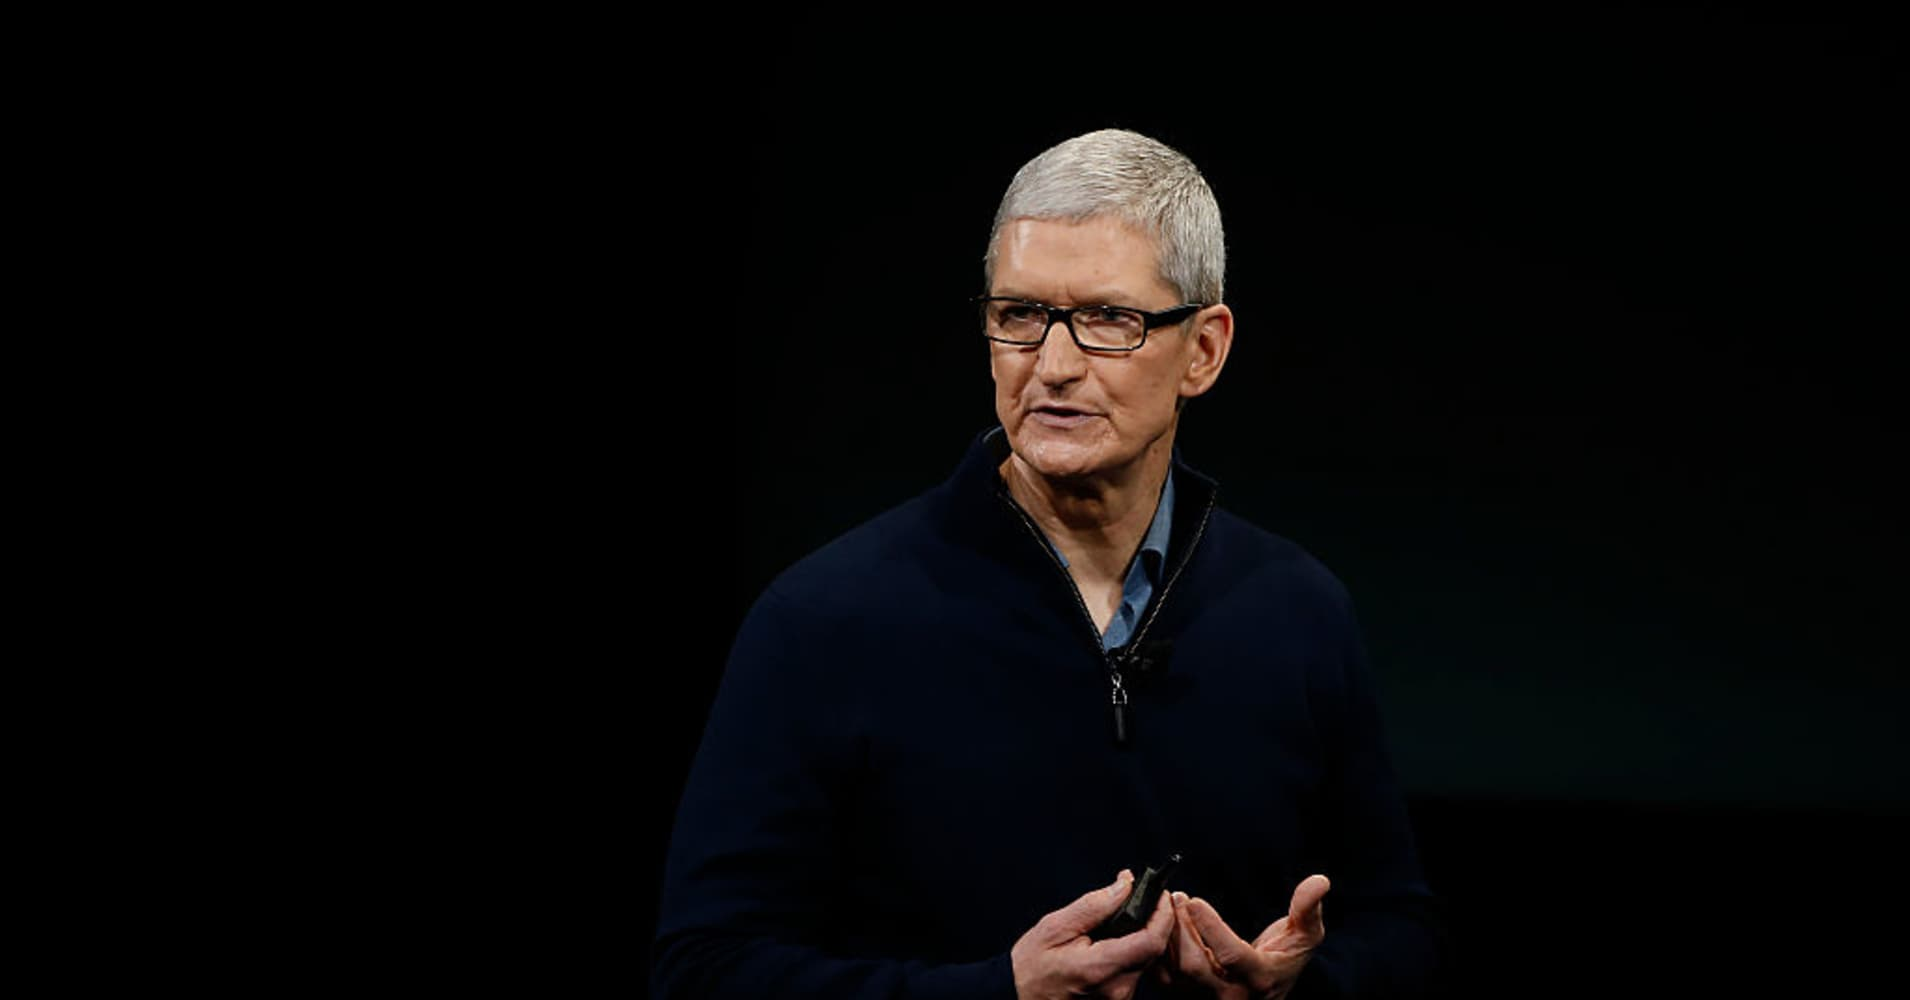 Apple CEO Tim Cook slams Donald Trump's decision to withdraw from climate deal